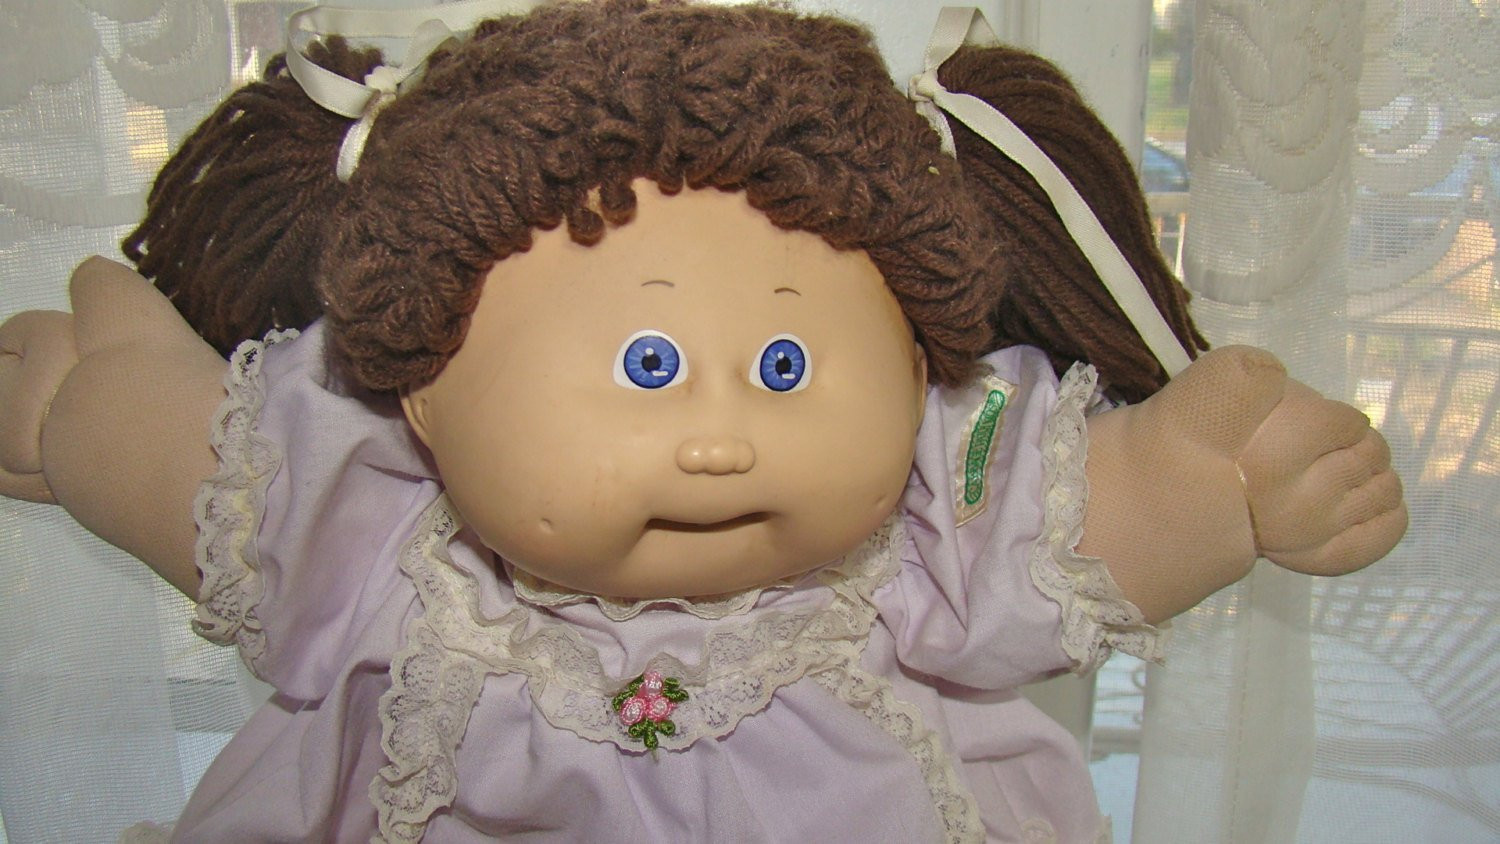 Best Of Cabbage Patch Girl Doll 1982 with original Cabbage Patch Kids Old Cabbage Patch Doll Of Wonderful 47 Ideas Old Cabbage Patch Doll